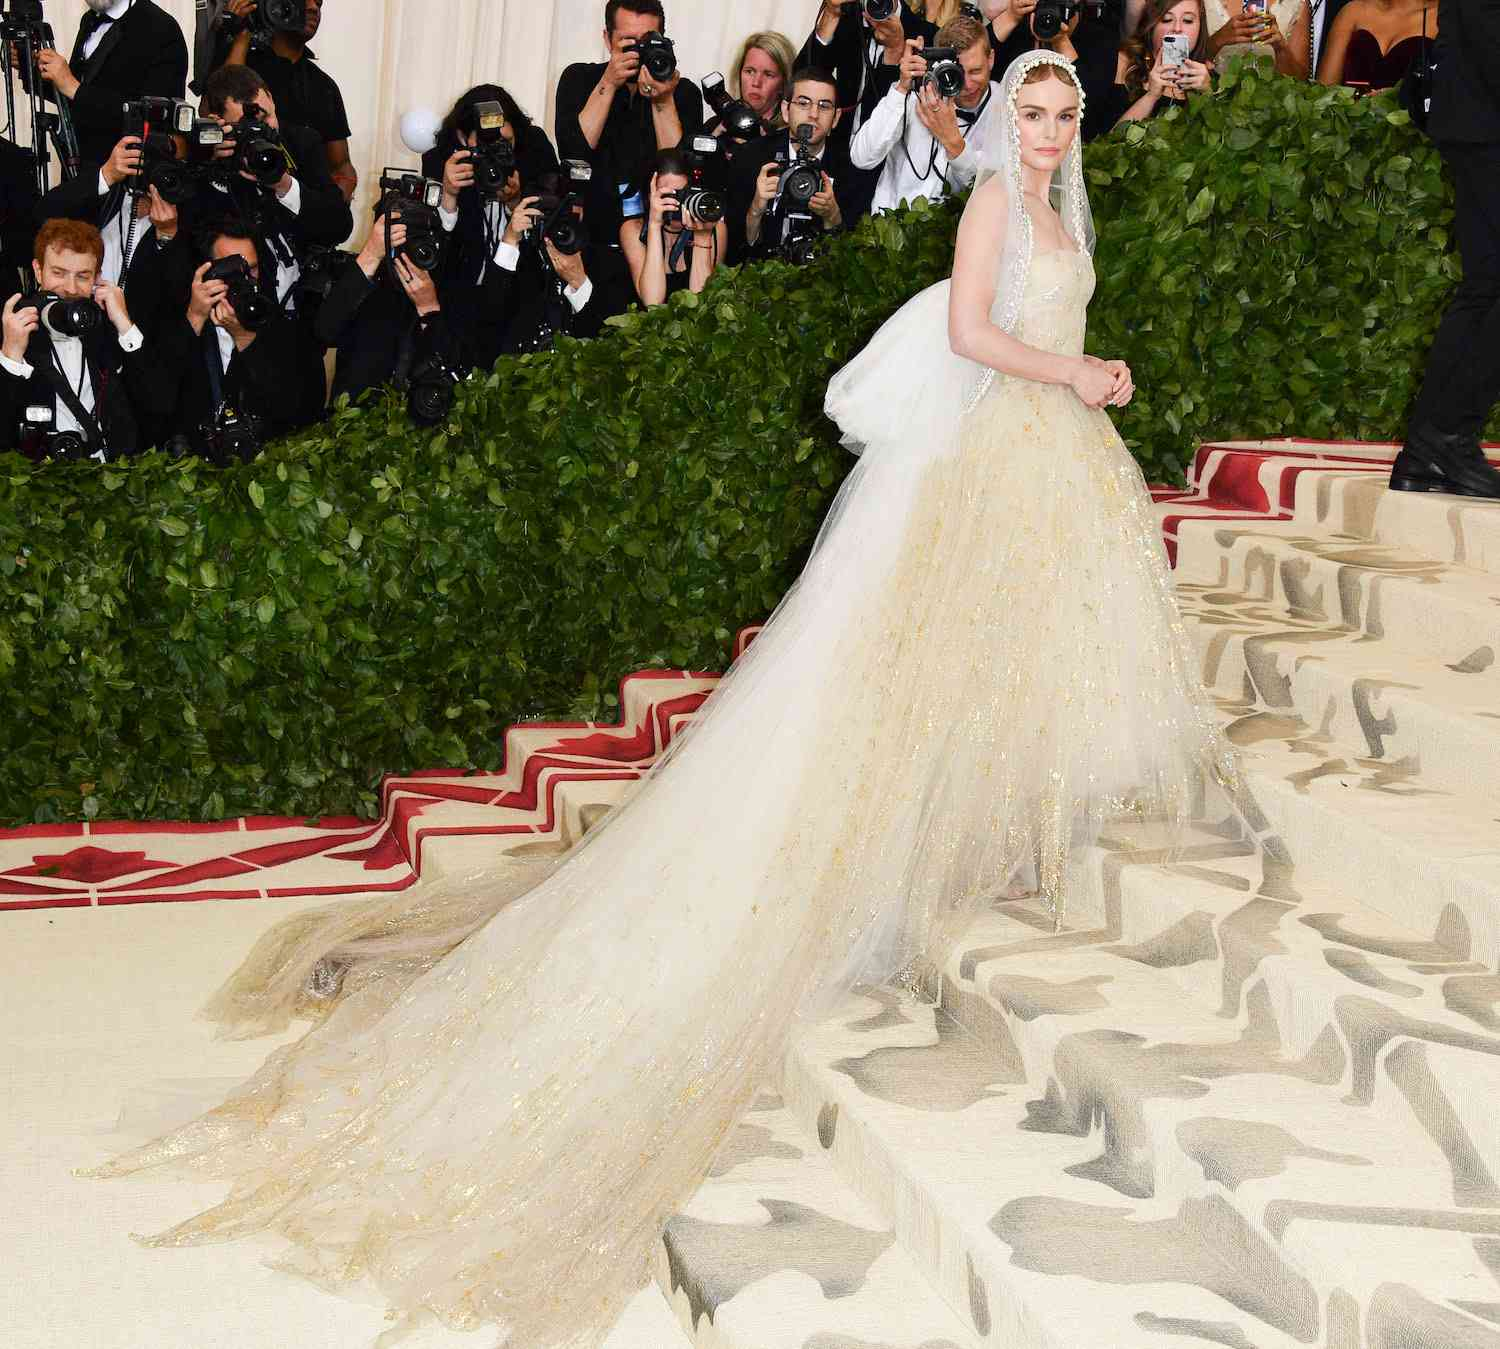 Kate Bosworth poses on the Met Gala stairs at the 2018 Met Ball.